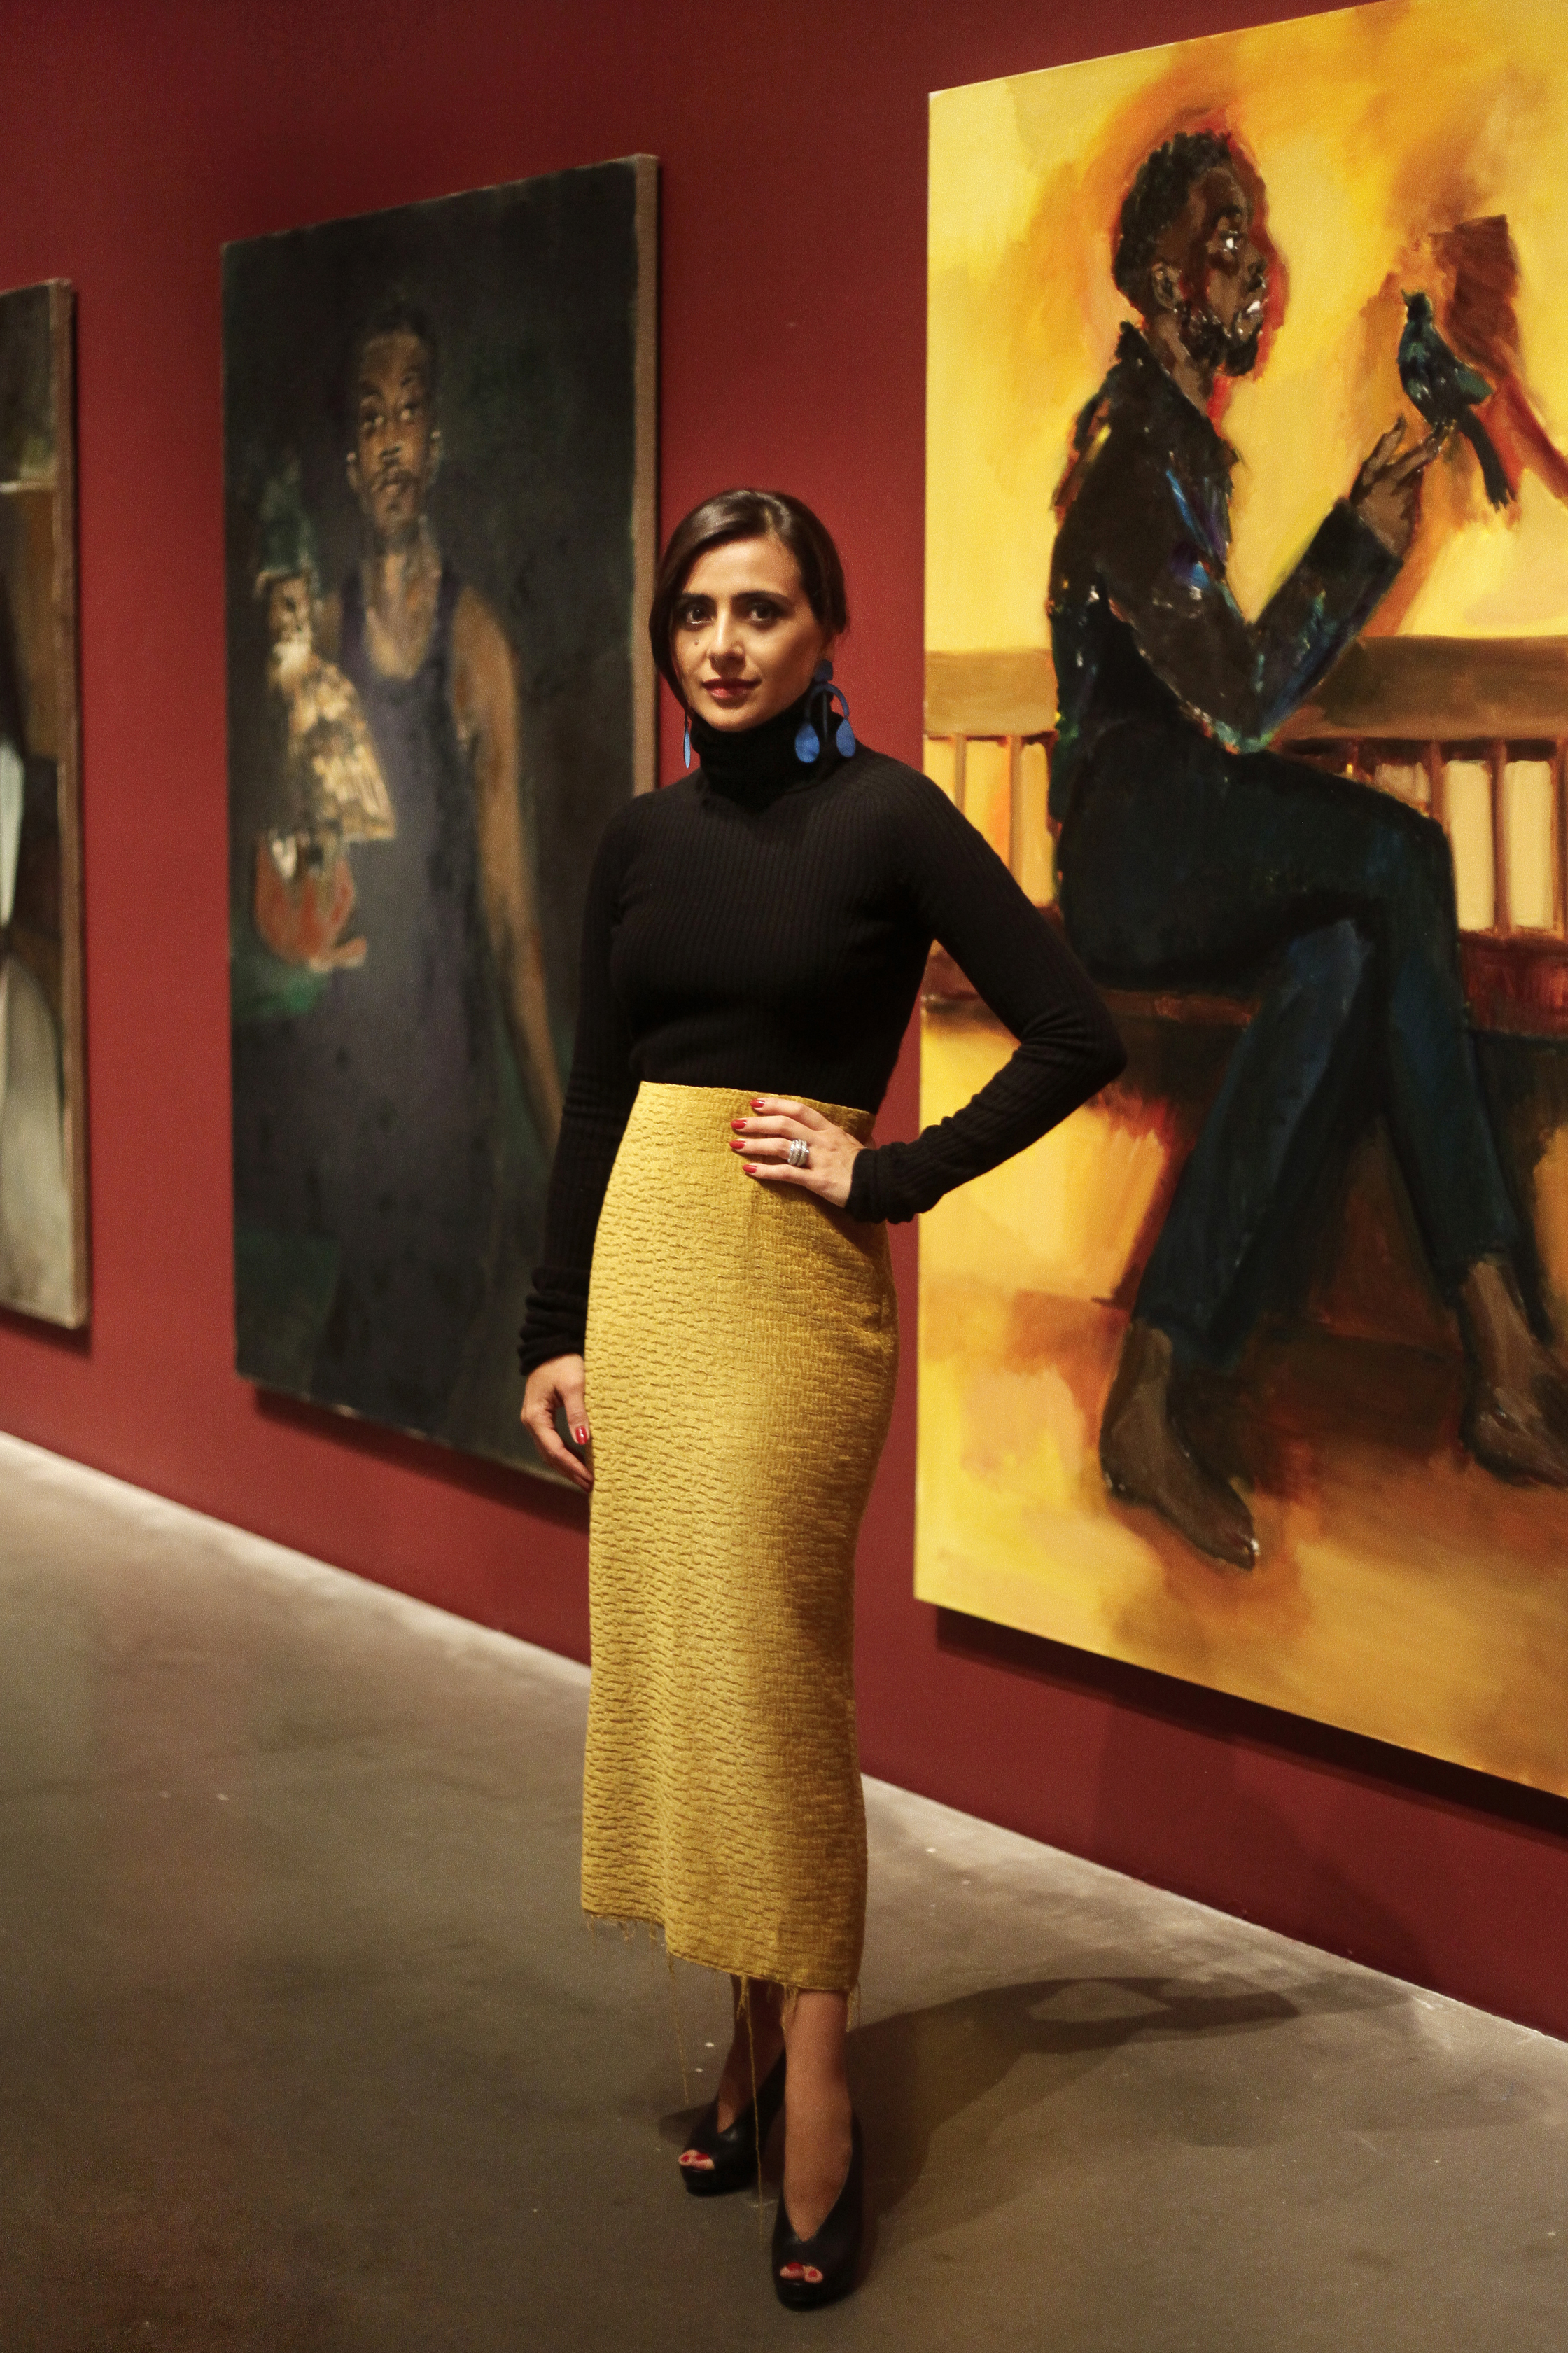 NAZY AT LYNETTE YIADOM-BOAKYE'S SOLO EXHIBITION 'UNDER SONG FOR A CIPHER' AT THE NEW MUSEUM.            PHOTO BY RAUL TOVAR